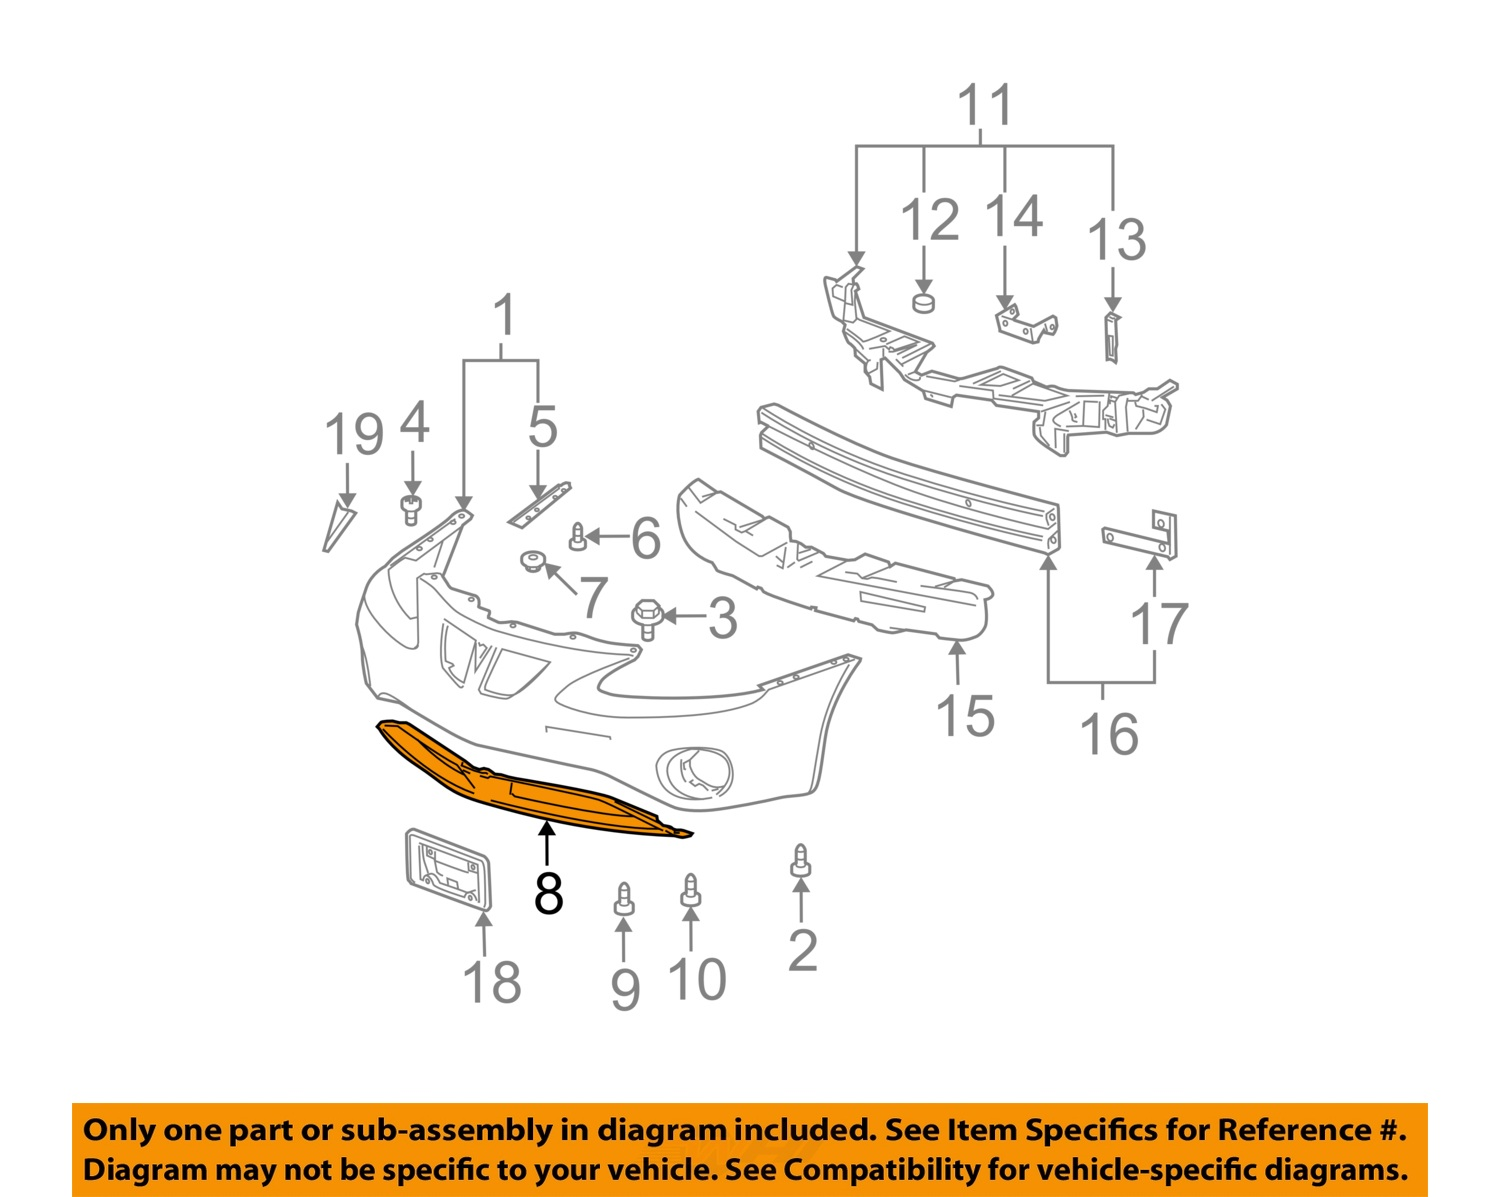 grand prix parts diagram chevy truck exhaust systems pontiac gm oem 04 08 front bumper lower panel